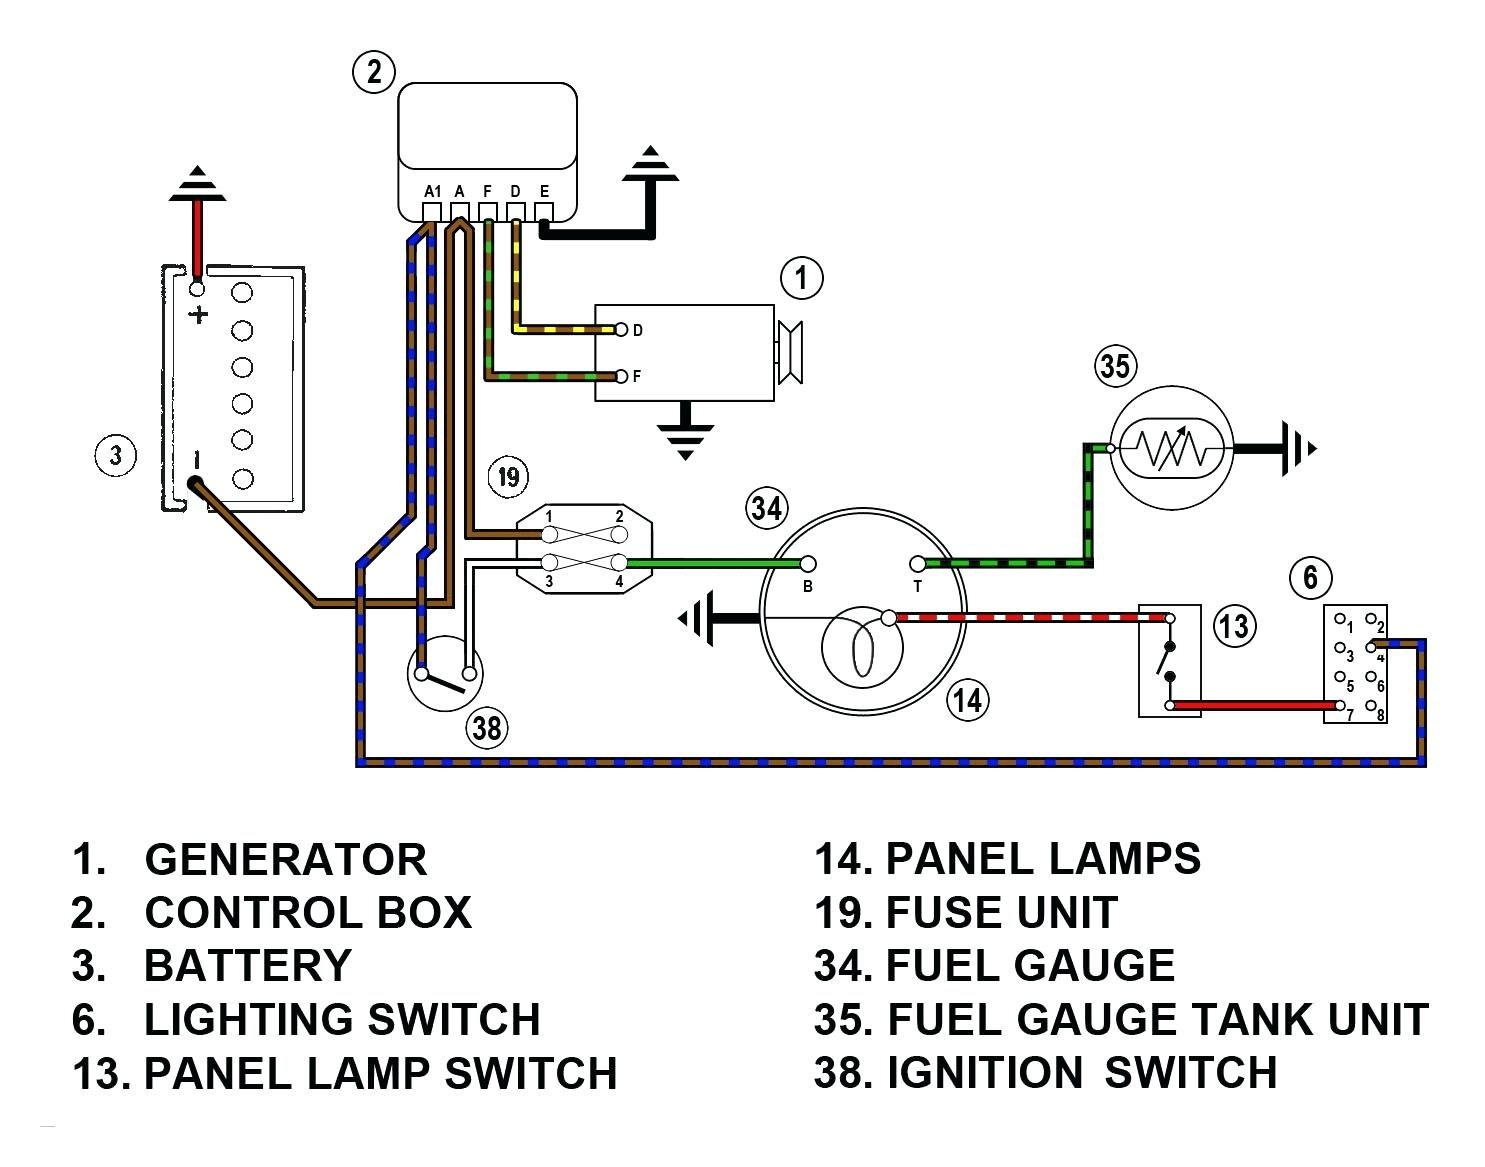 marine fuel gauge wiring diagram Download-circuit diagram generator electrical panel wiring diagram rh ajeasturiasnetworking Marine Fuel Gauge Wiring Diagram 6-i